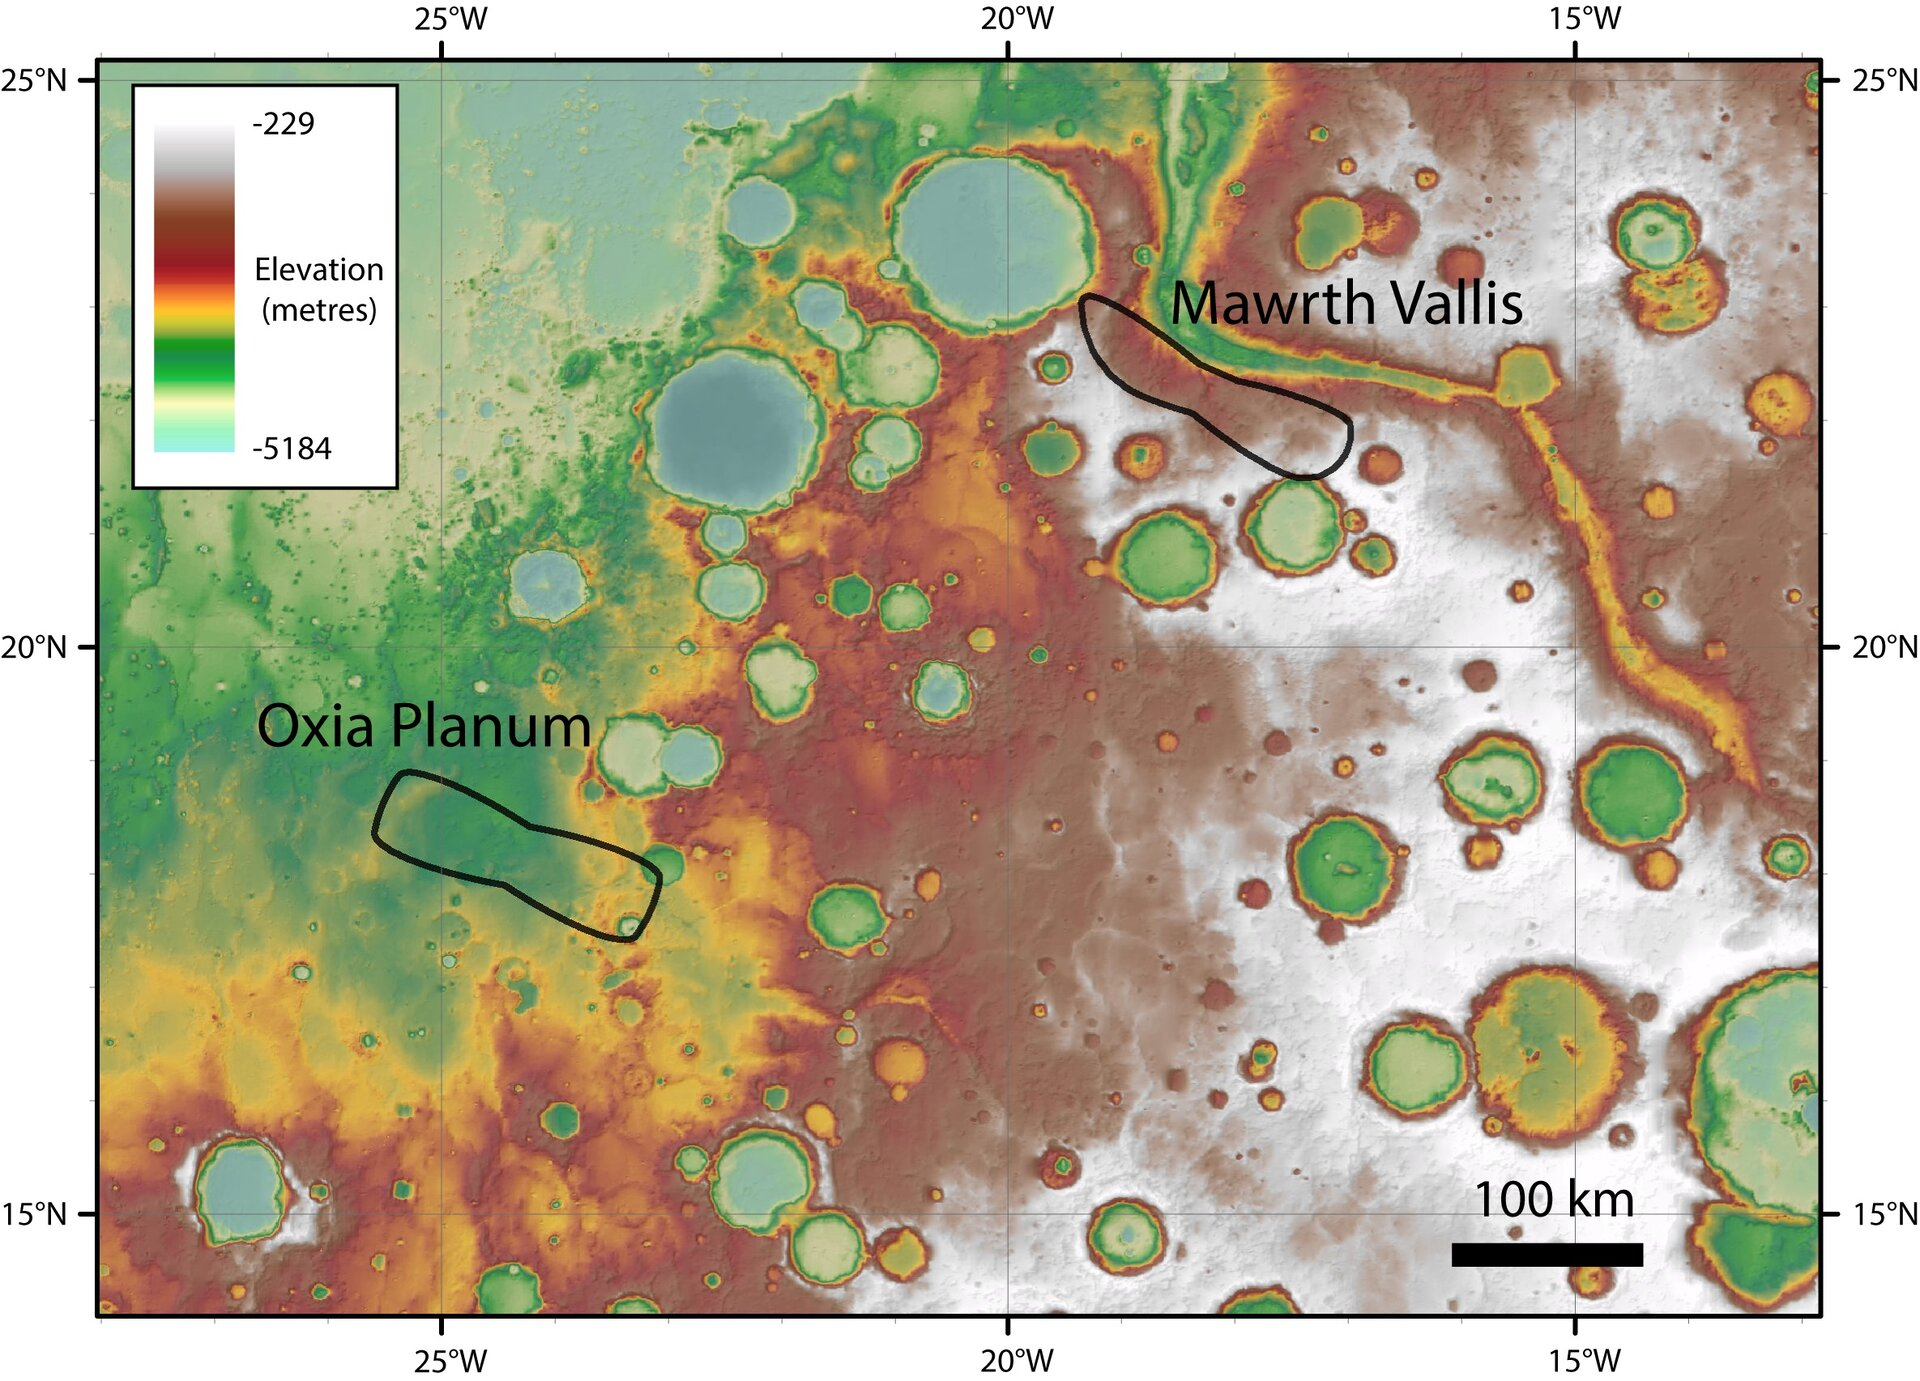 ExoMars landing site candidates – elevation